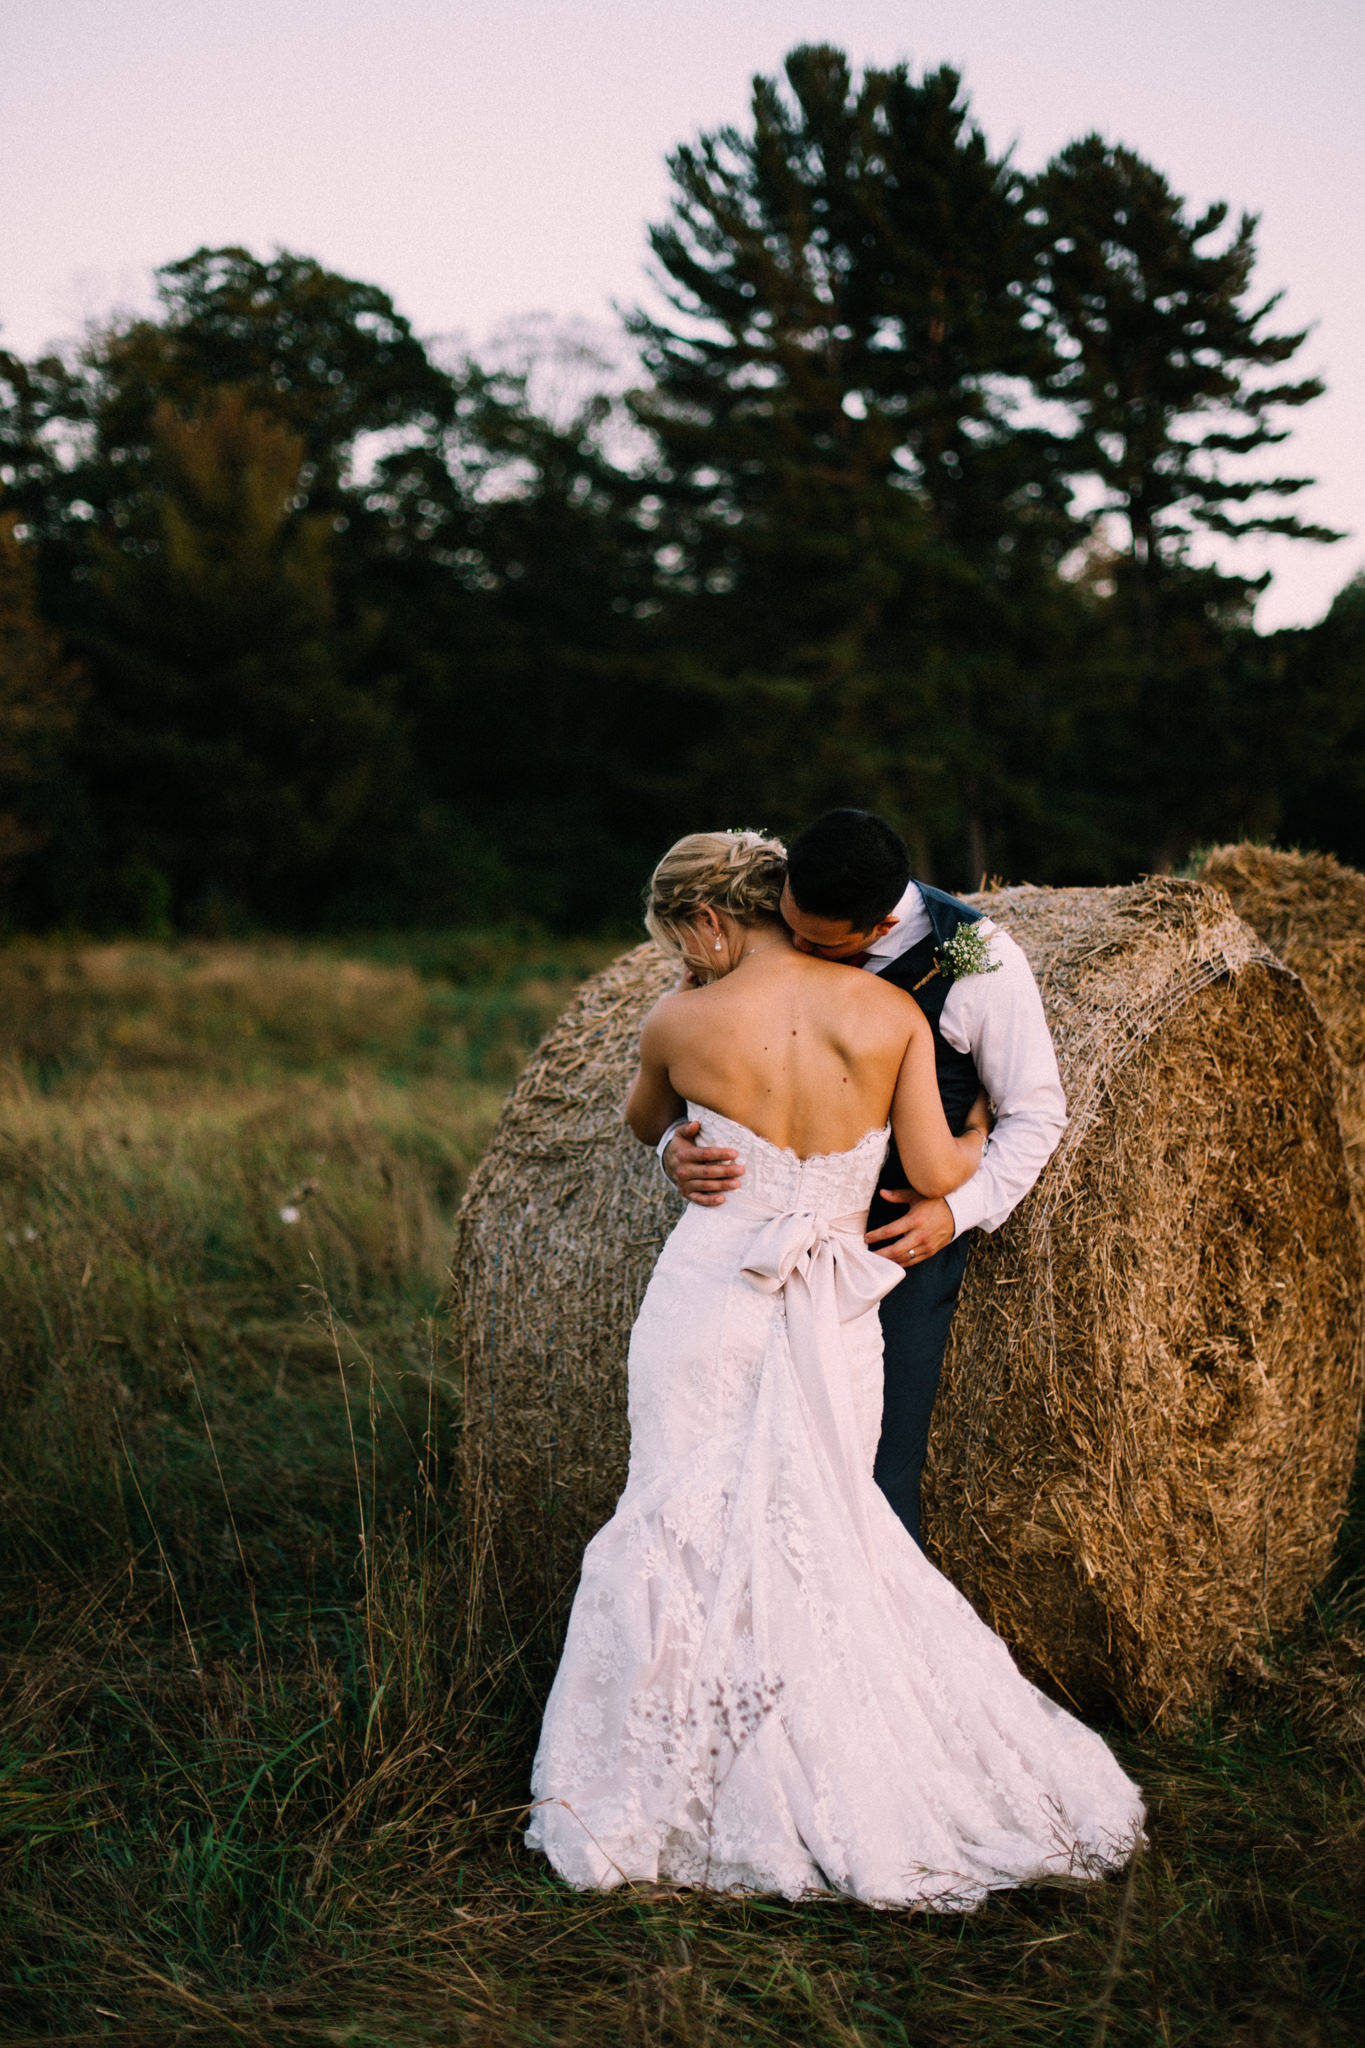 groom kissing bride on the neck in a farm field